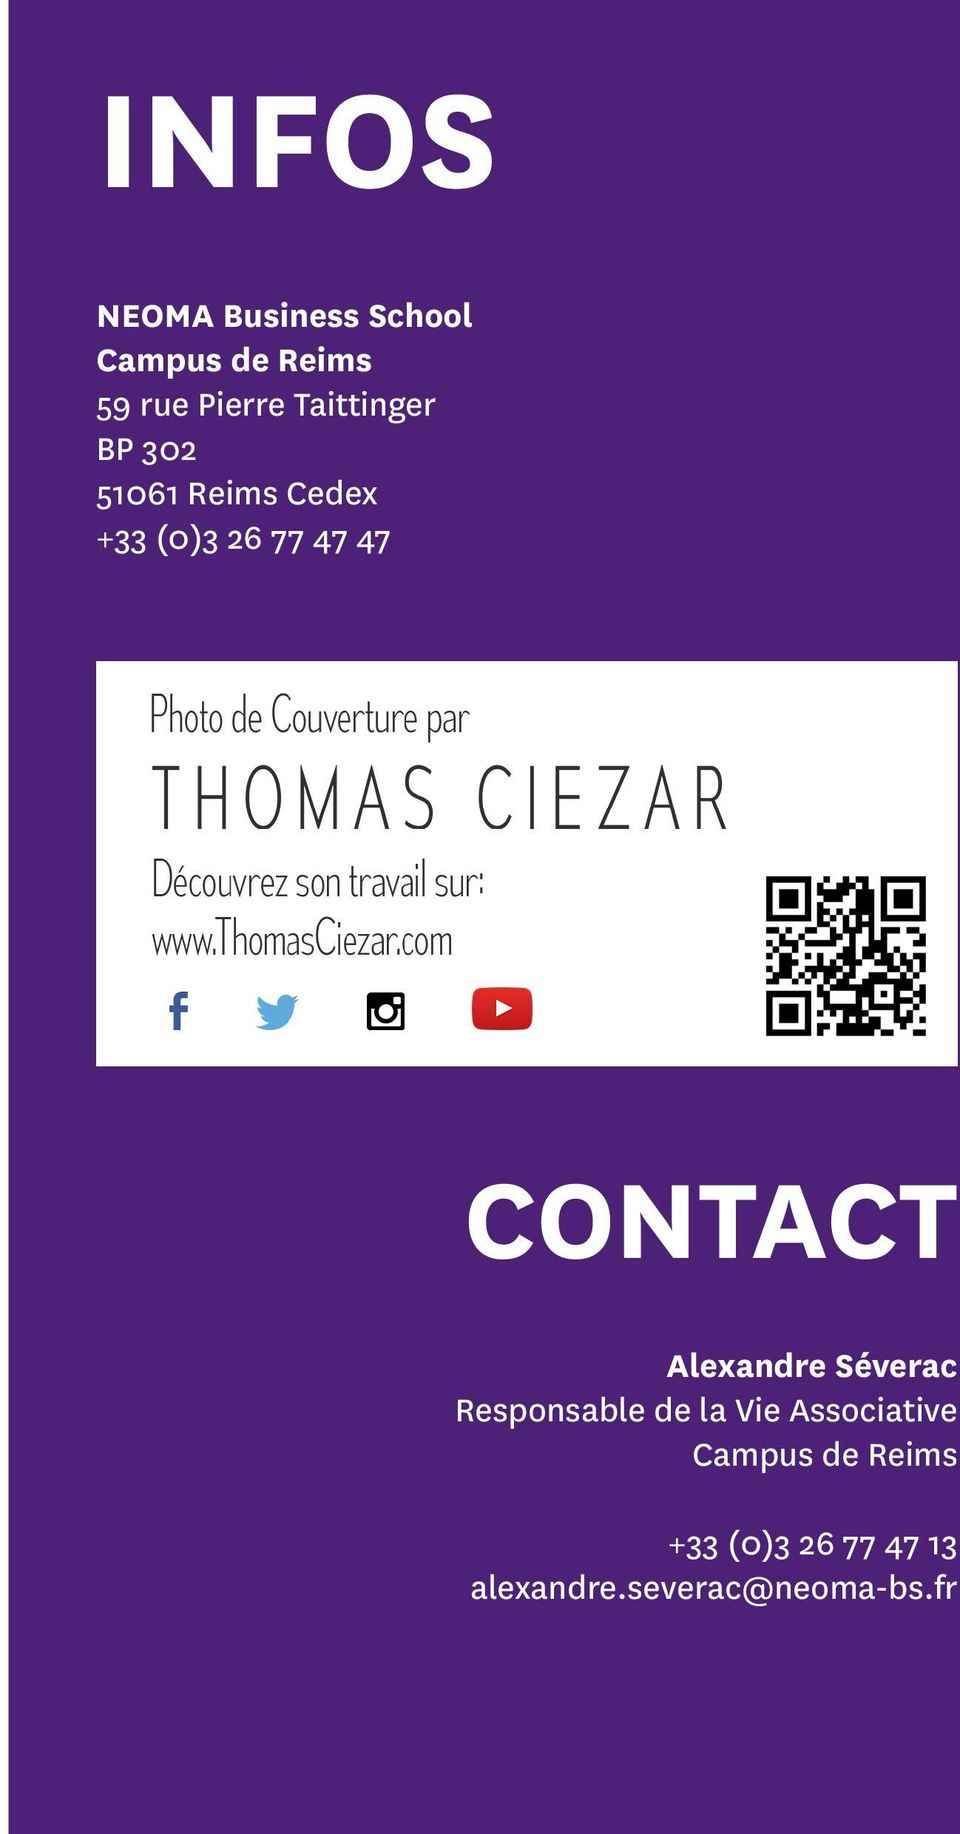 CONTACT Alexandre Séverac Responsable de la Vie Associative